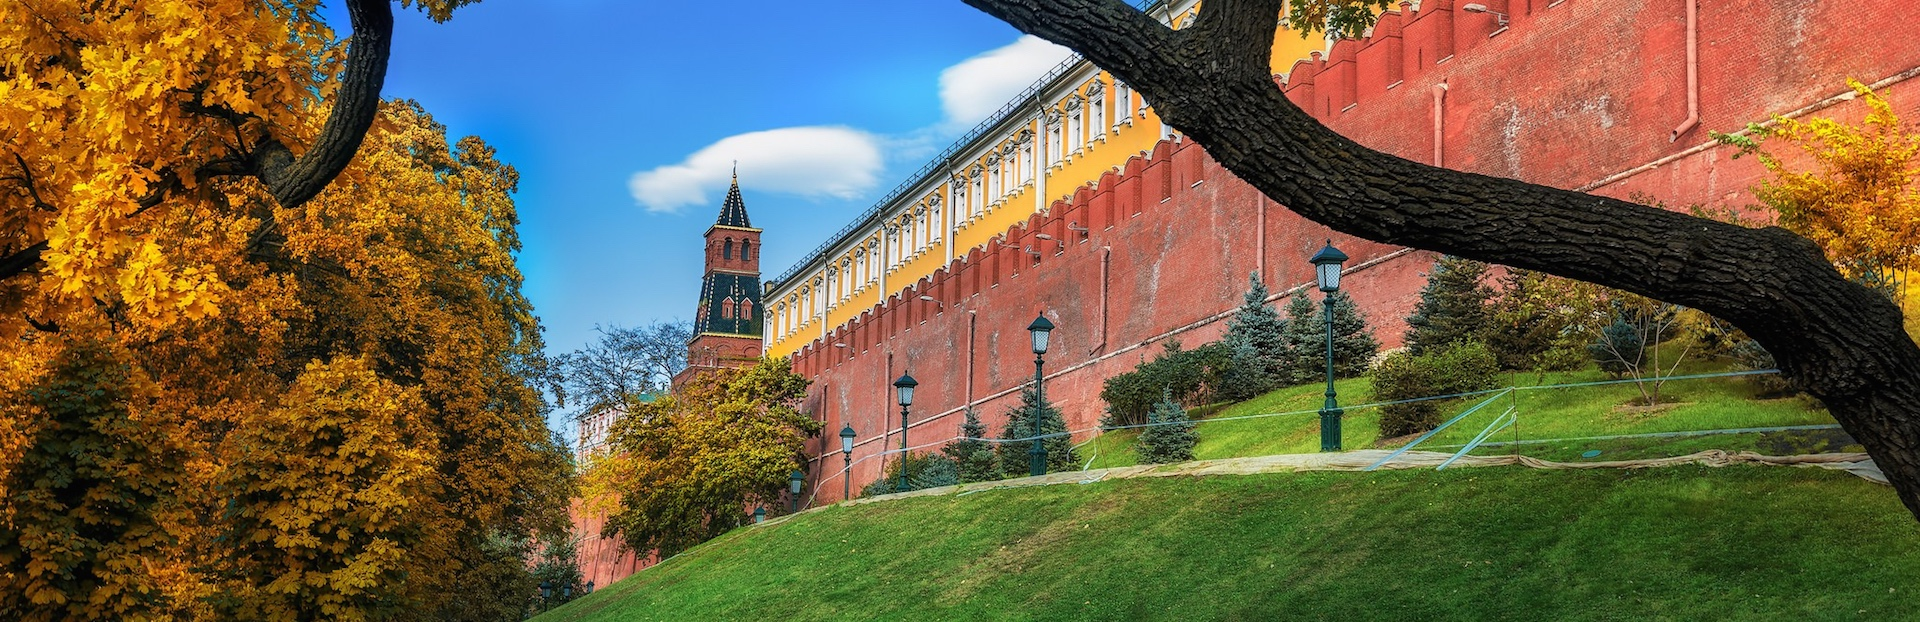 Moscow audio tour: The Red Square Garden